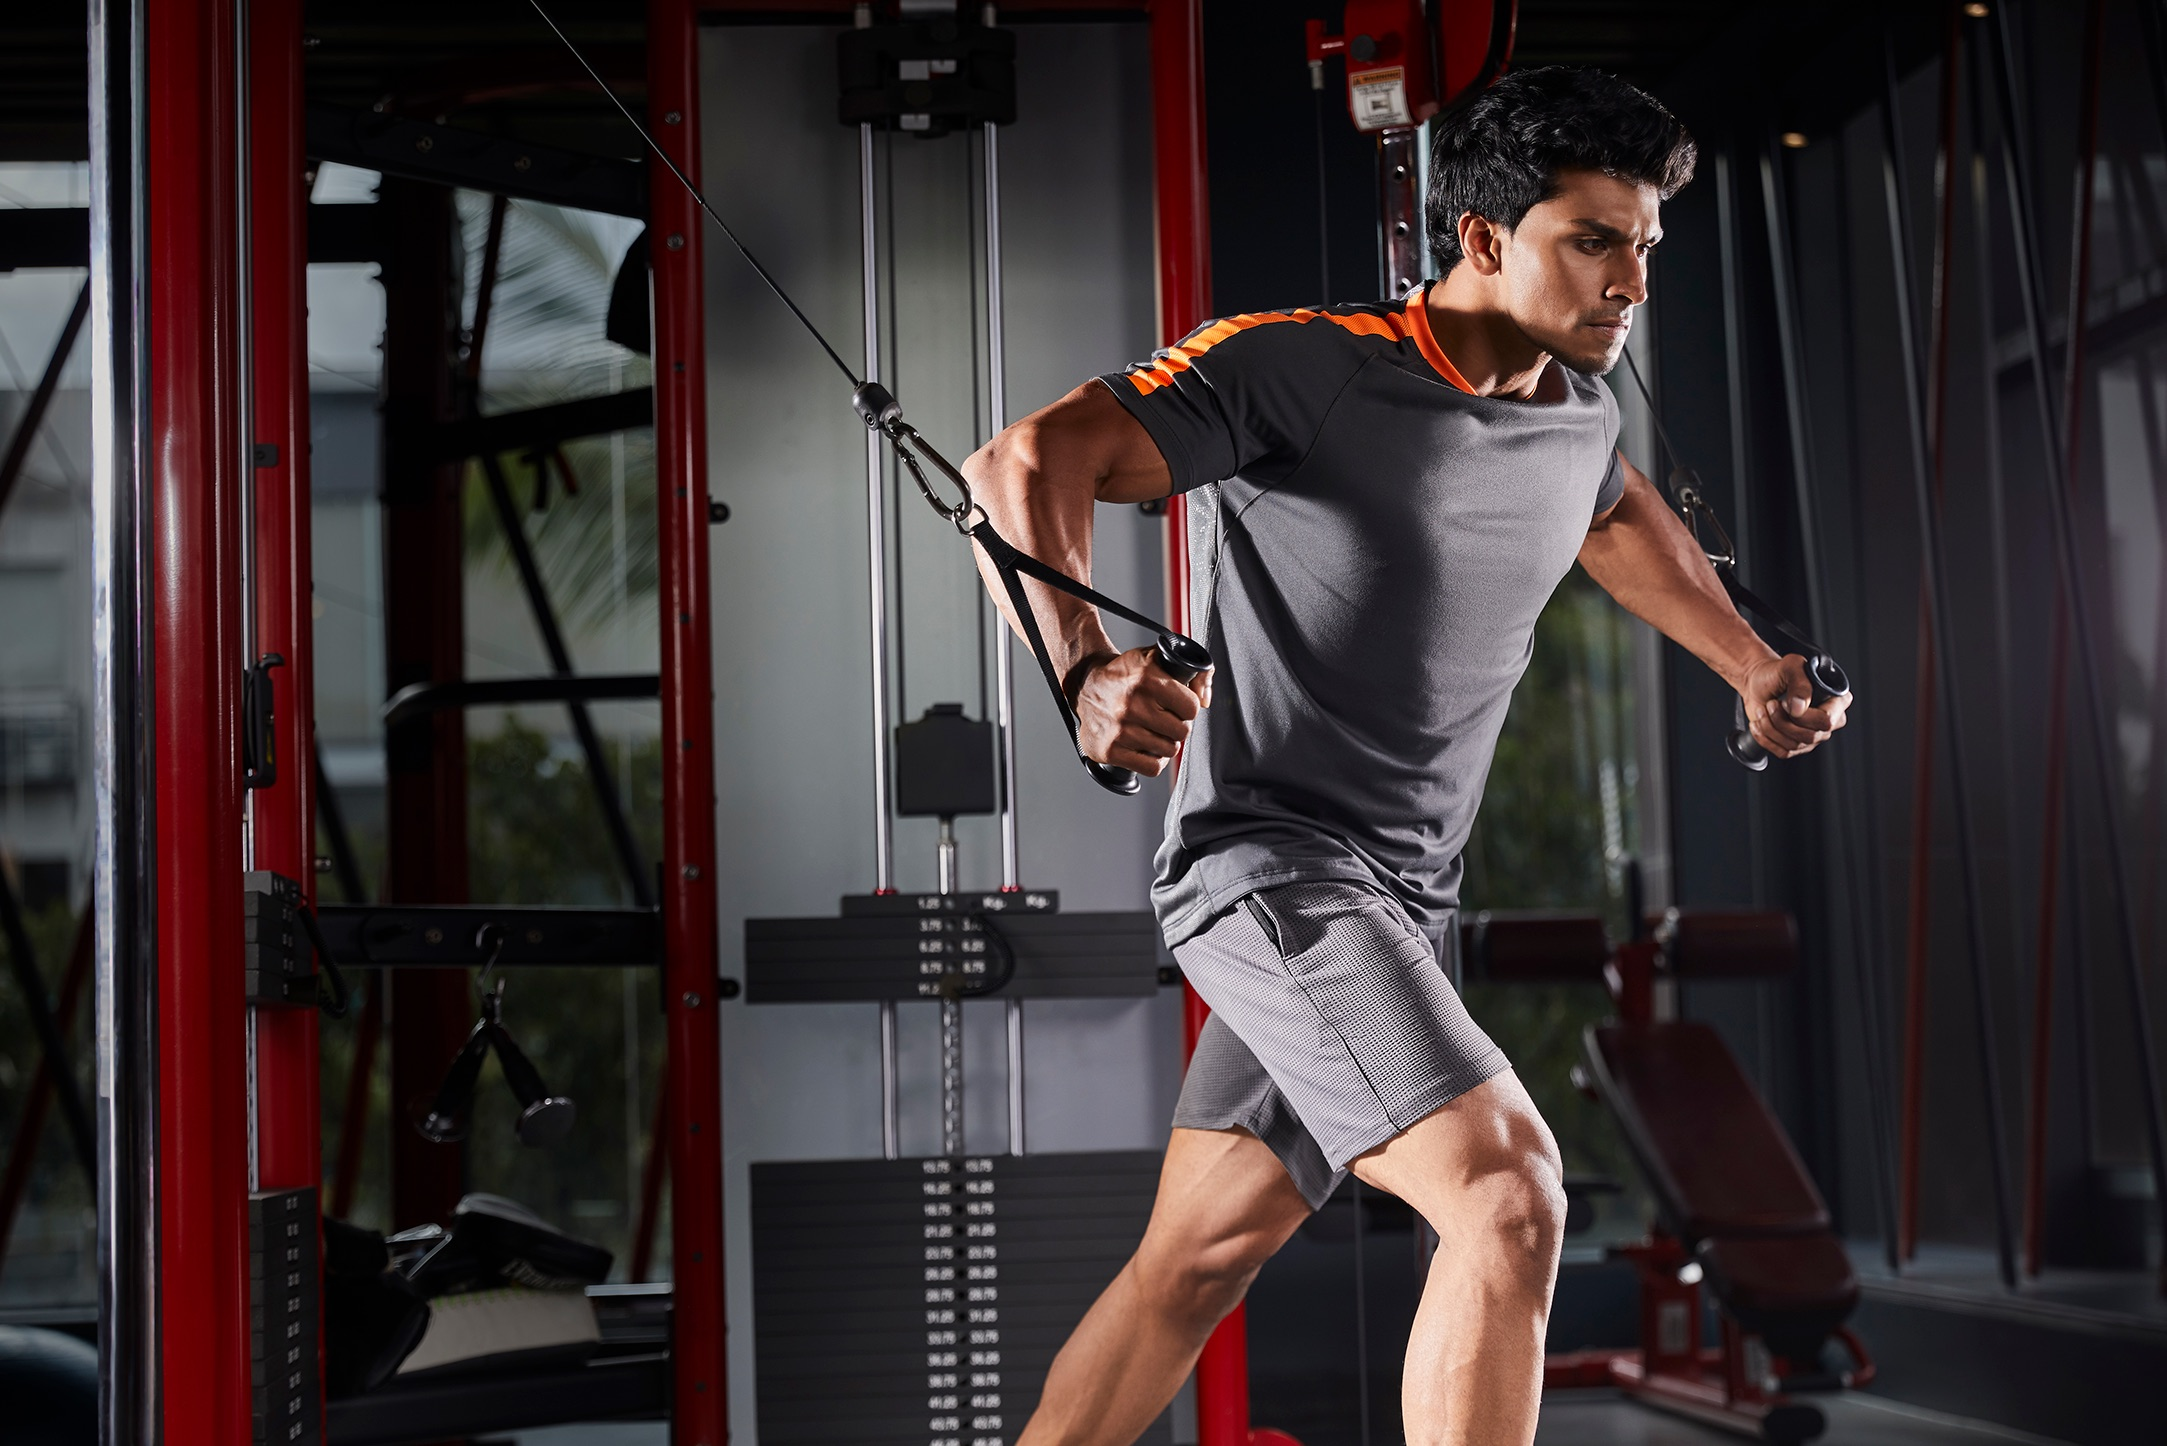 Cult pass member working out inside gym